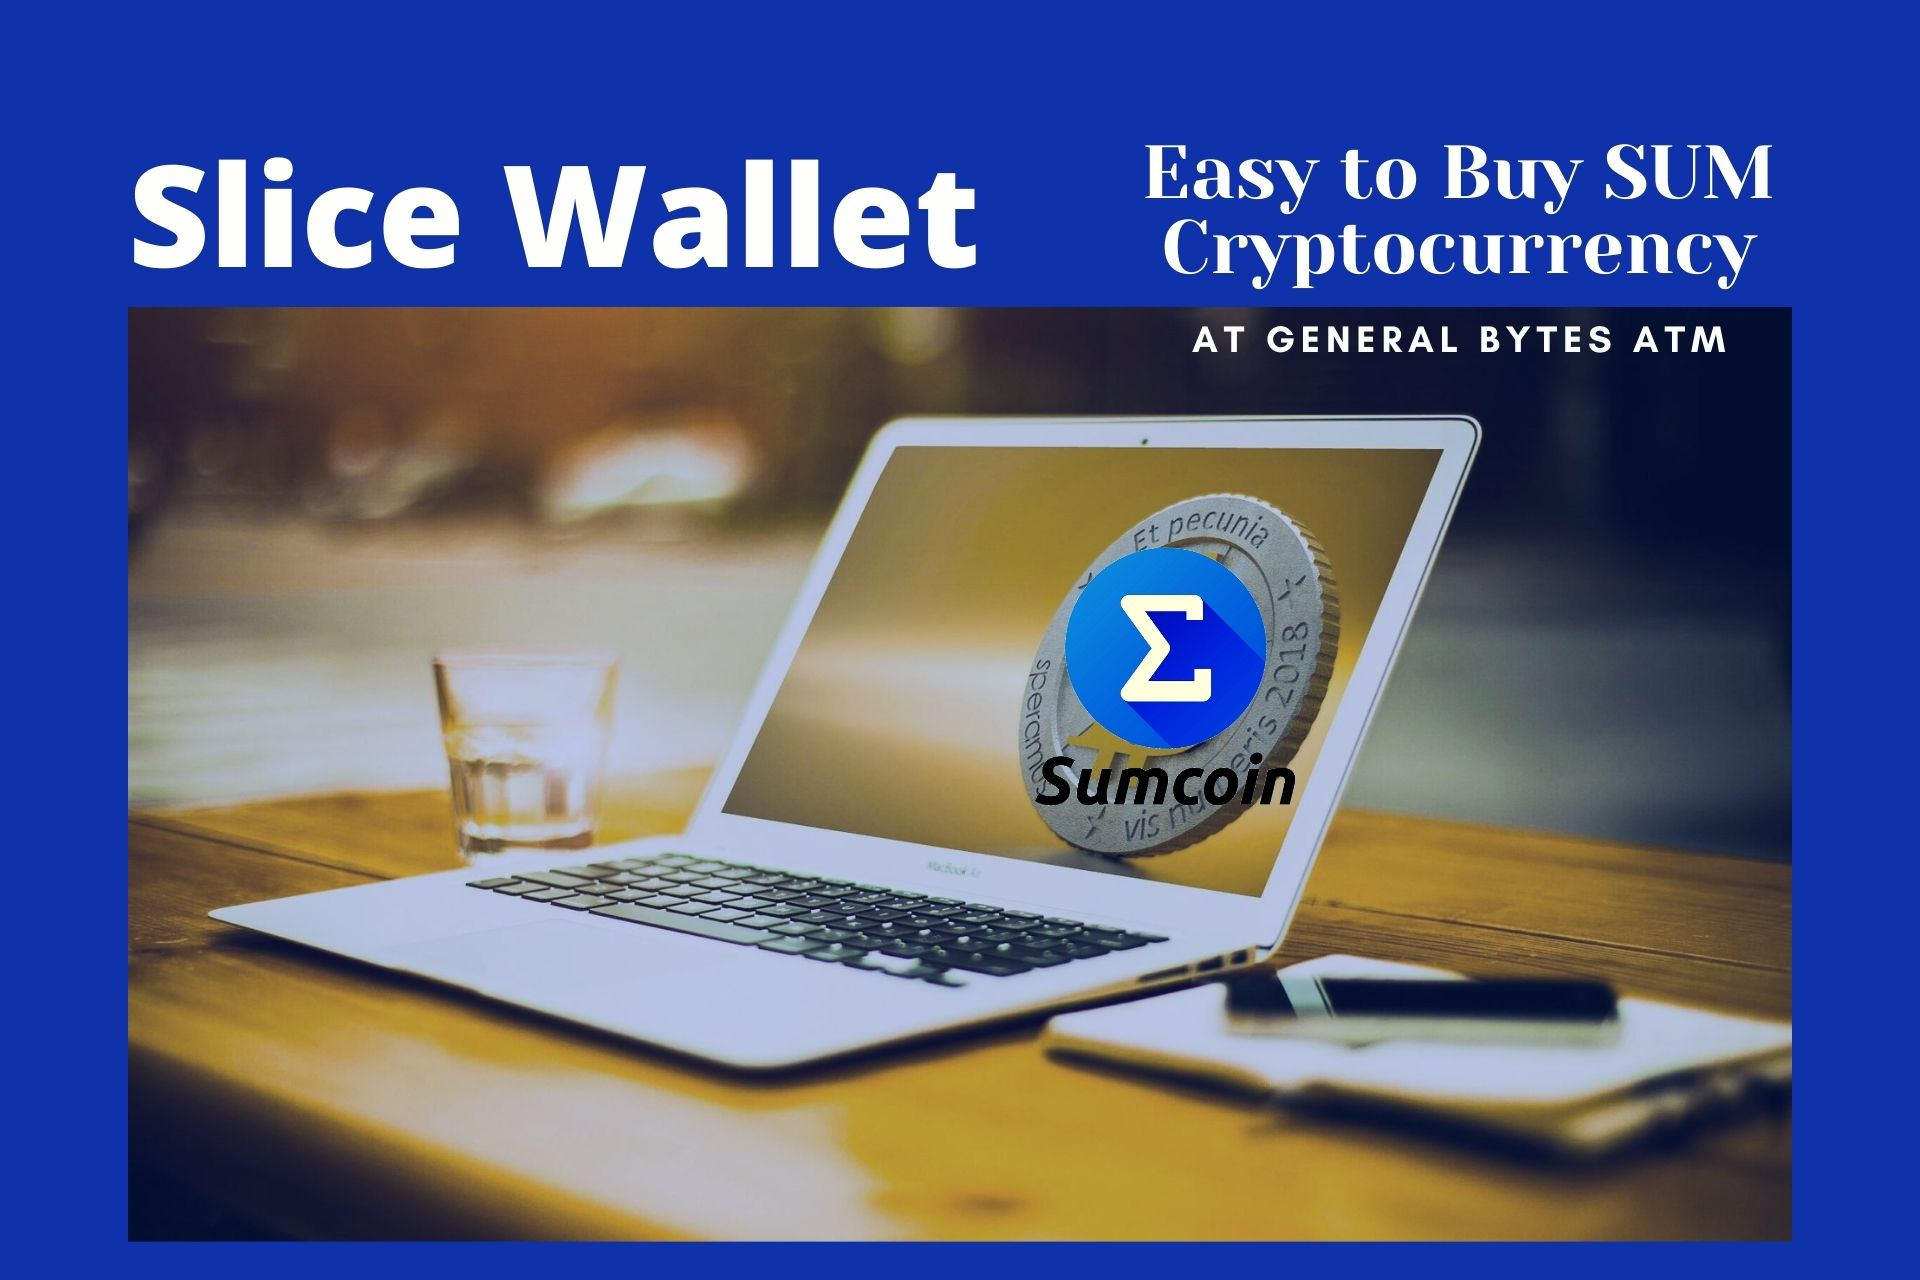 Sumcoin's Slice Wallet Makes It Easy to Buy SUM Cryptocurrency At General Bytes ATM